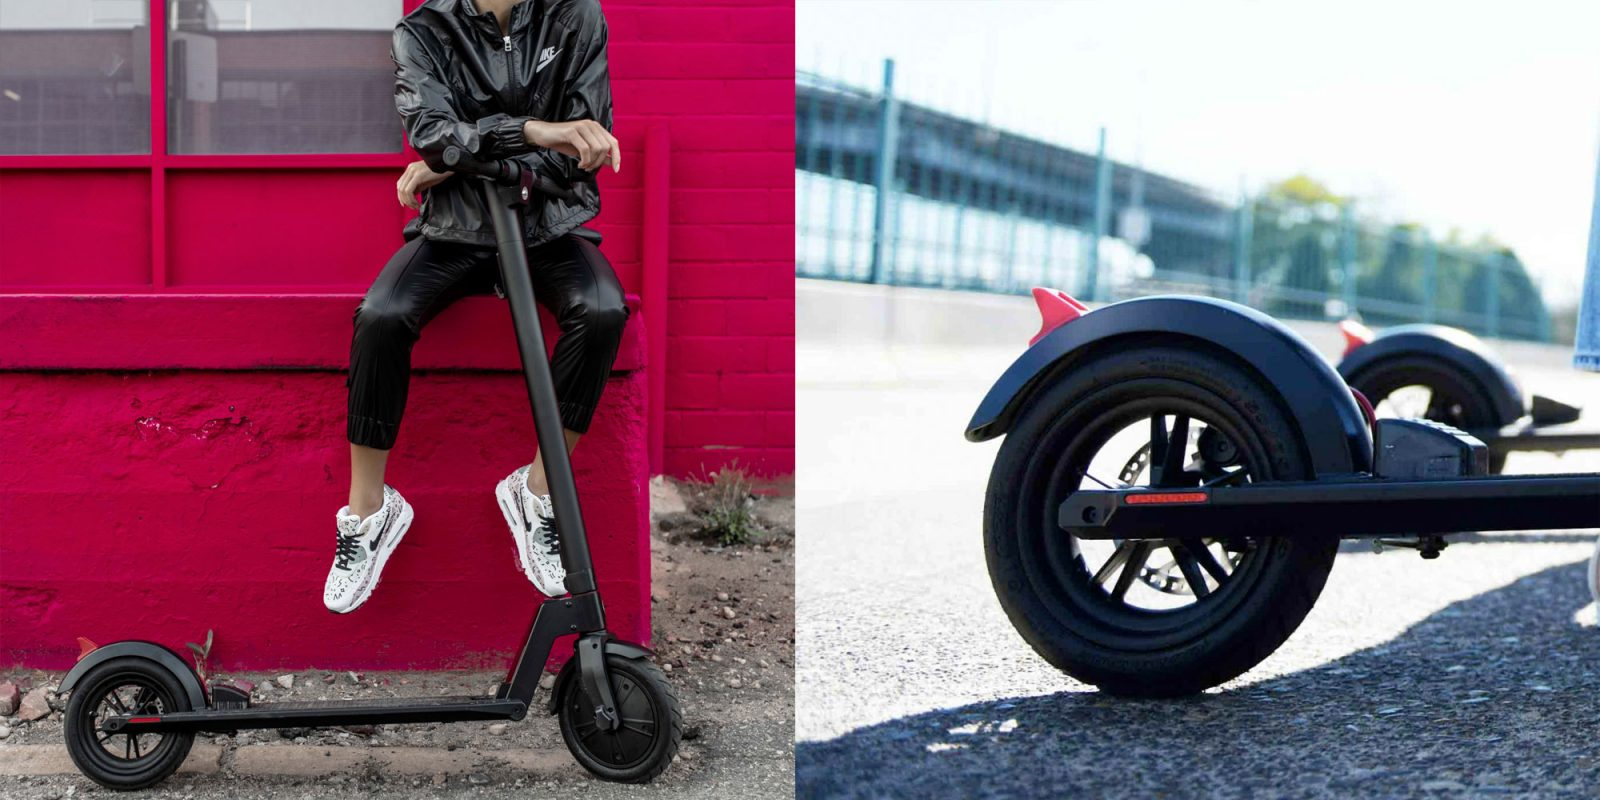 Ride around town on this electric scooter at 15.5 MPH for 12 miles: $329 (Reg. $400)